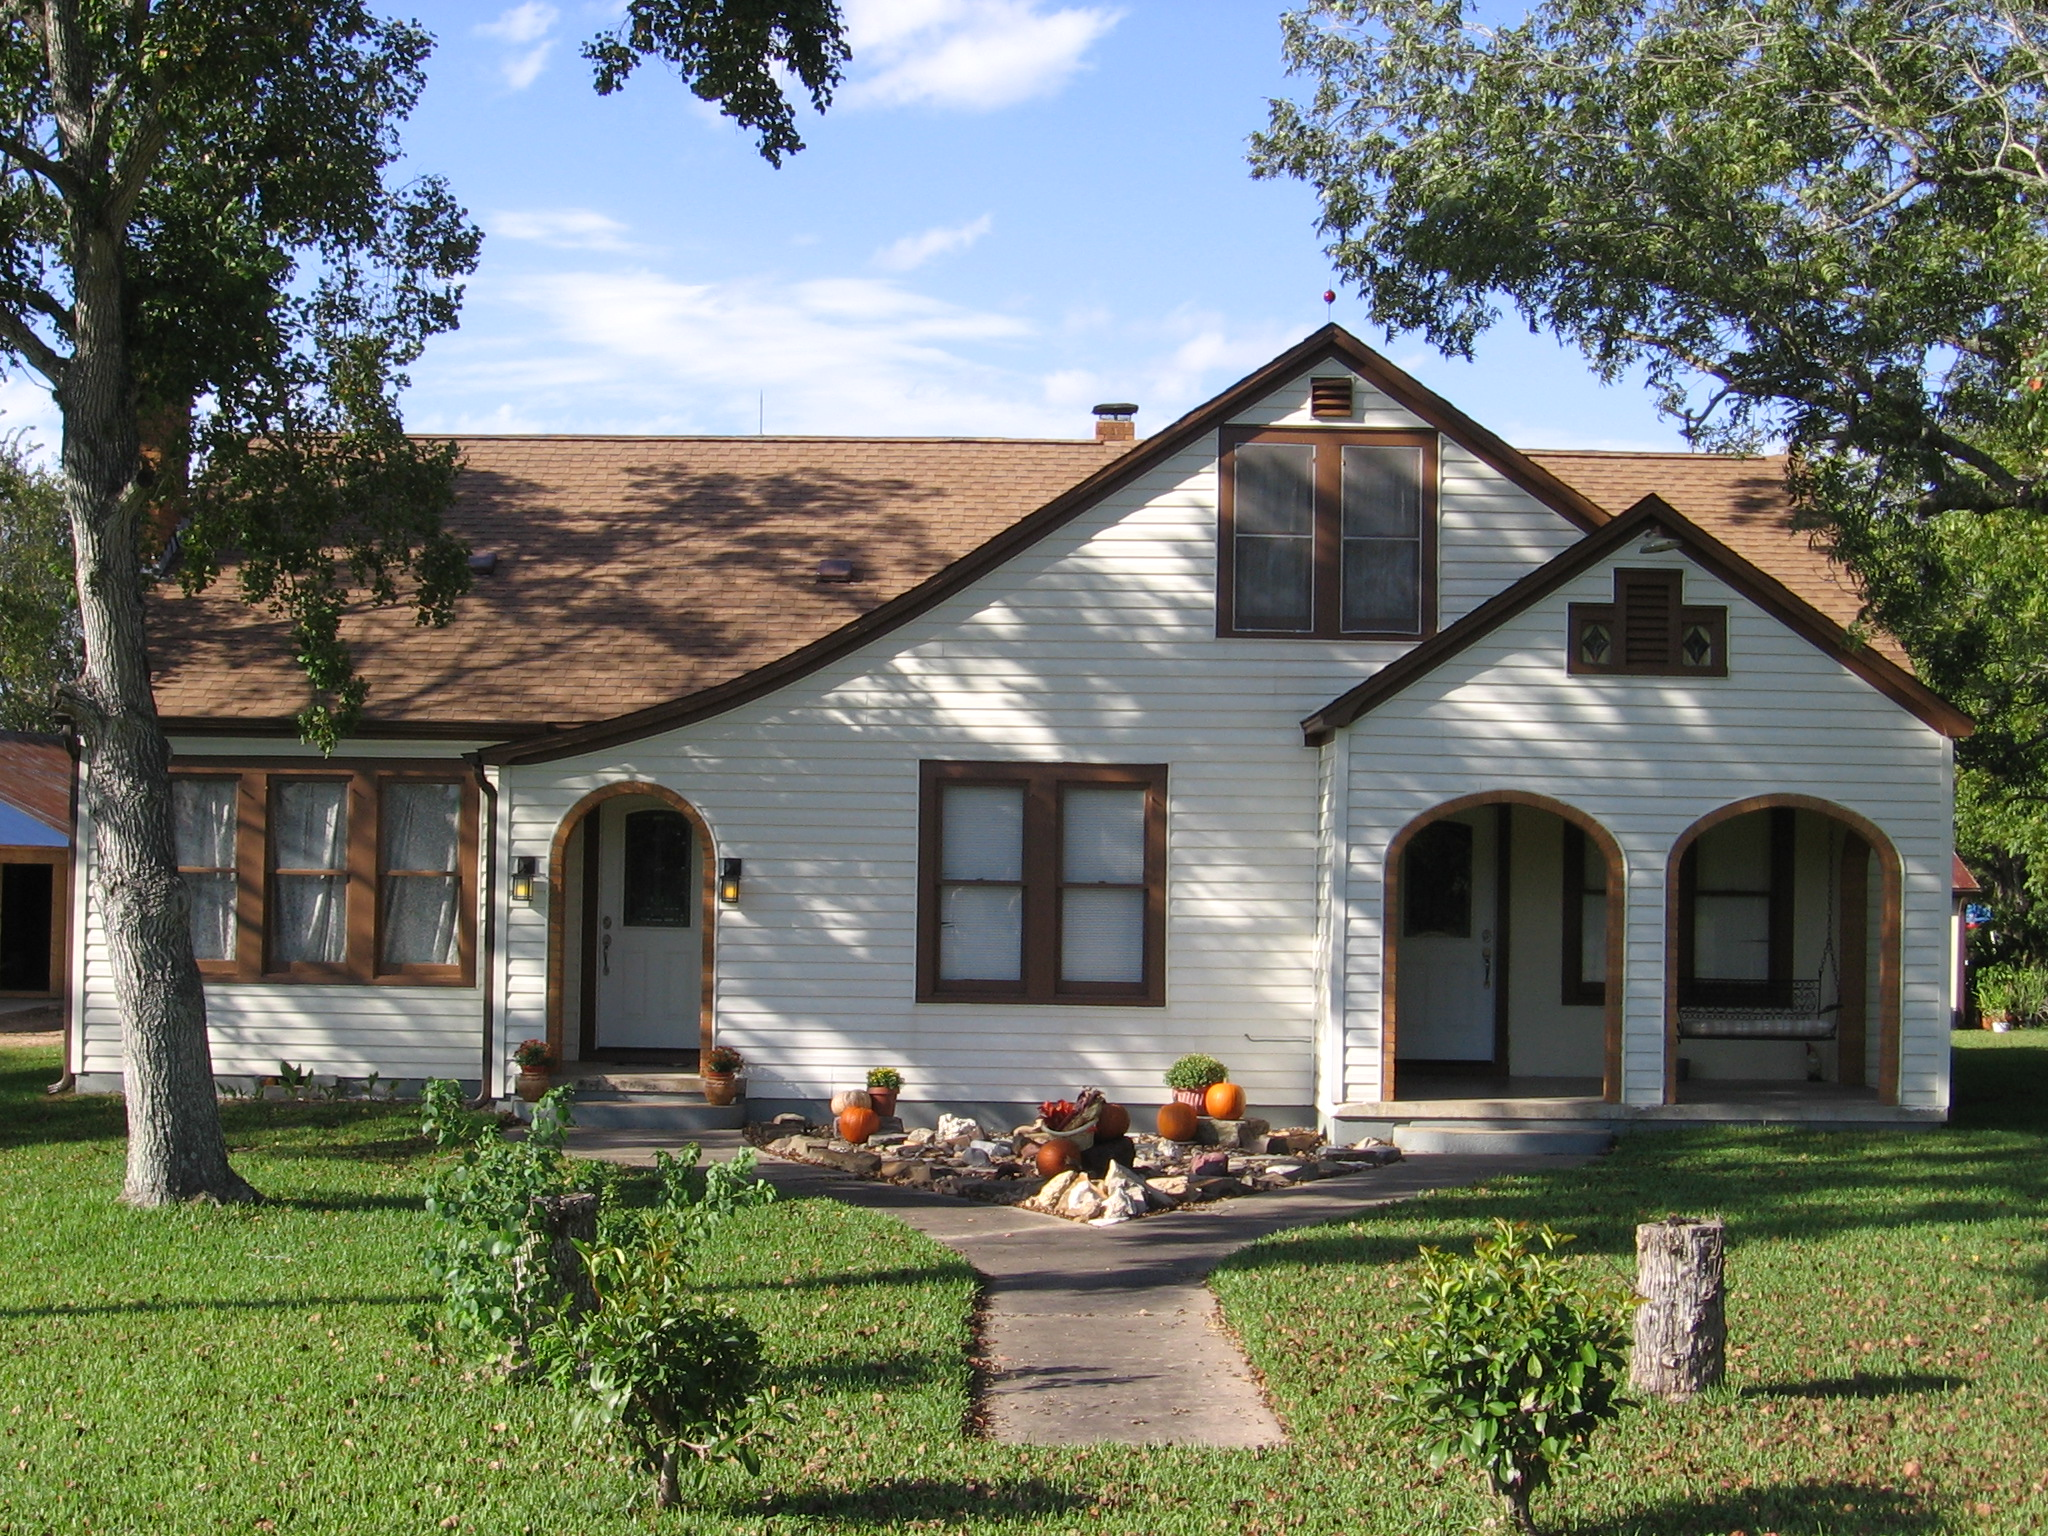 Ranch style house bungalow style house cottage house for Ranch style bungalow